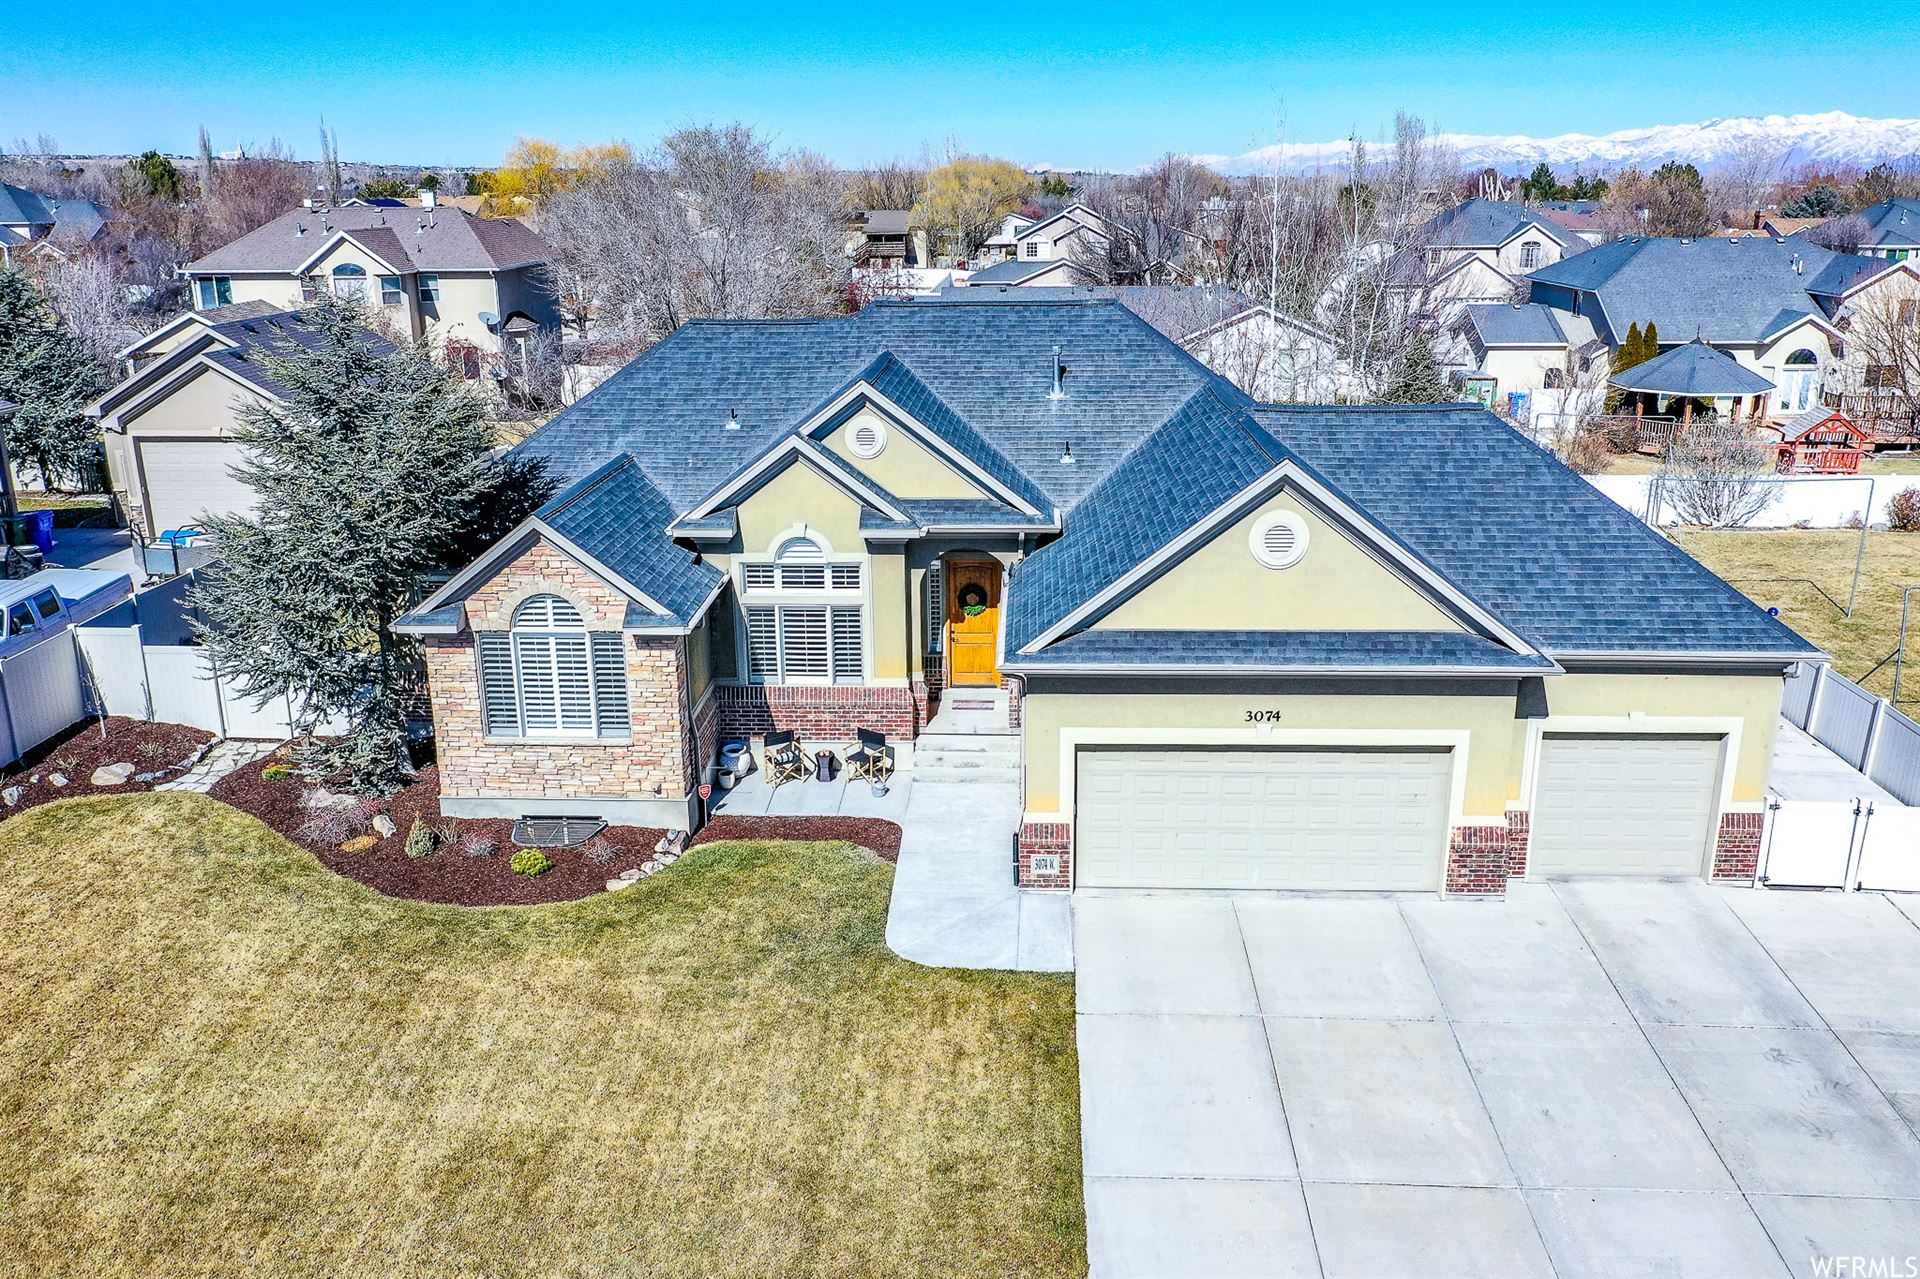 Photo of 3074 W 12875 S, Riverton, UT 84065 (MLS # 1723744)